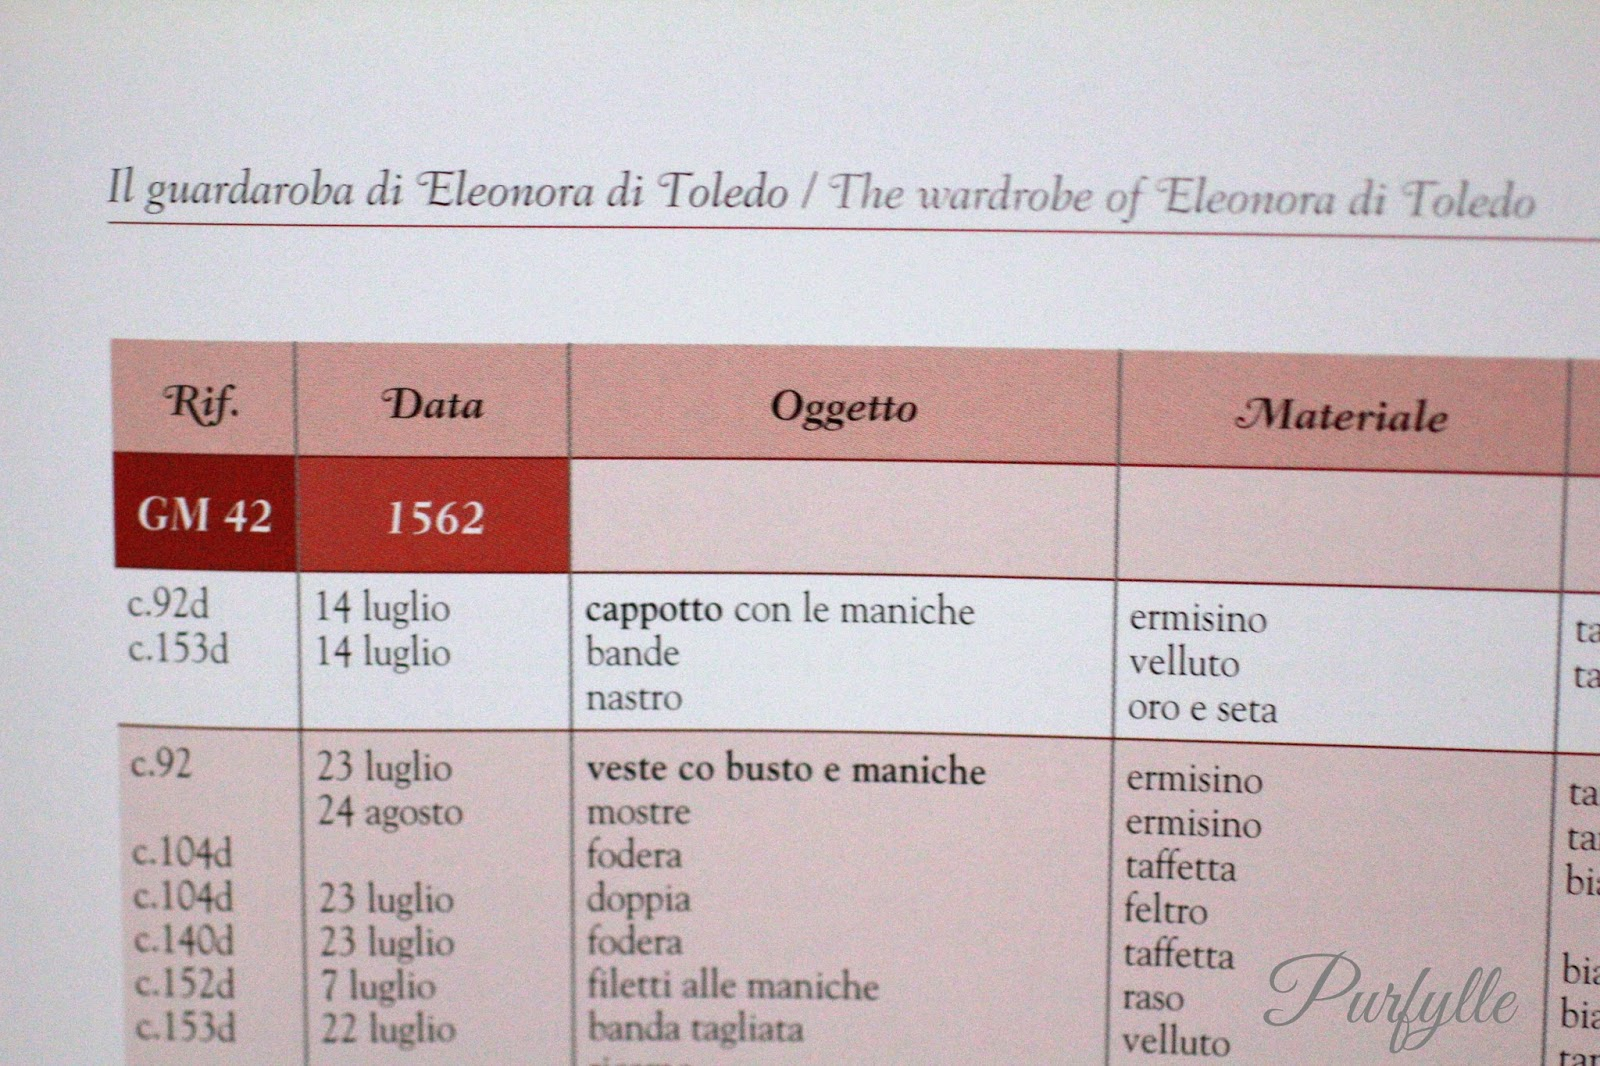 wardrobe accounts of Eleanora di Toledo